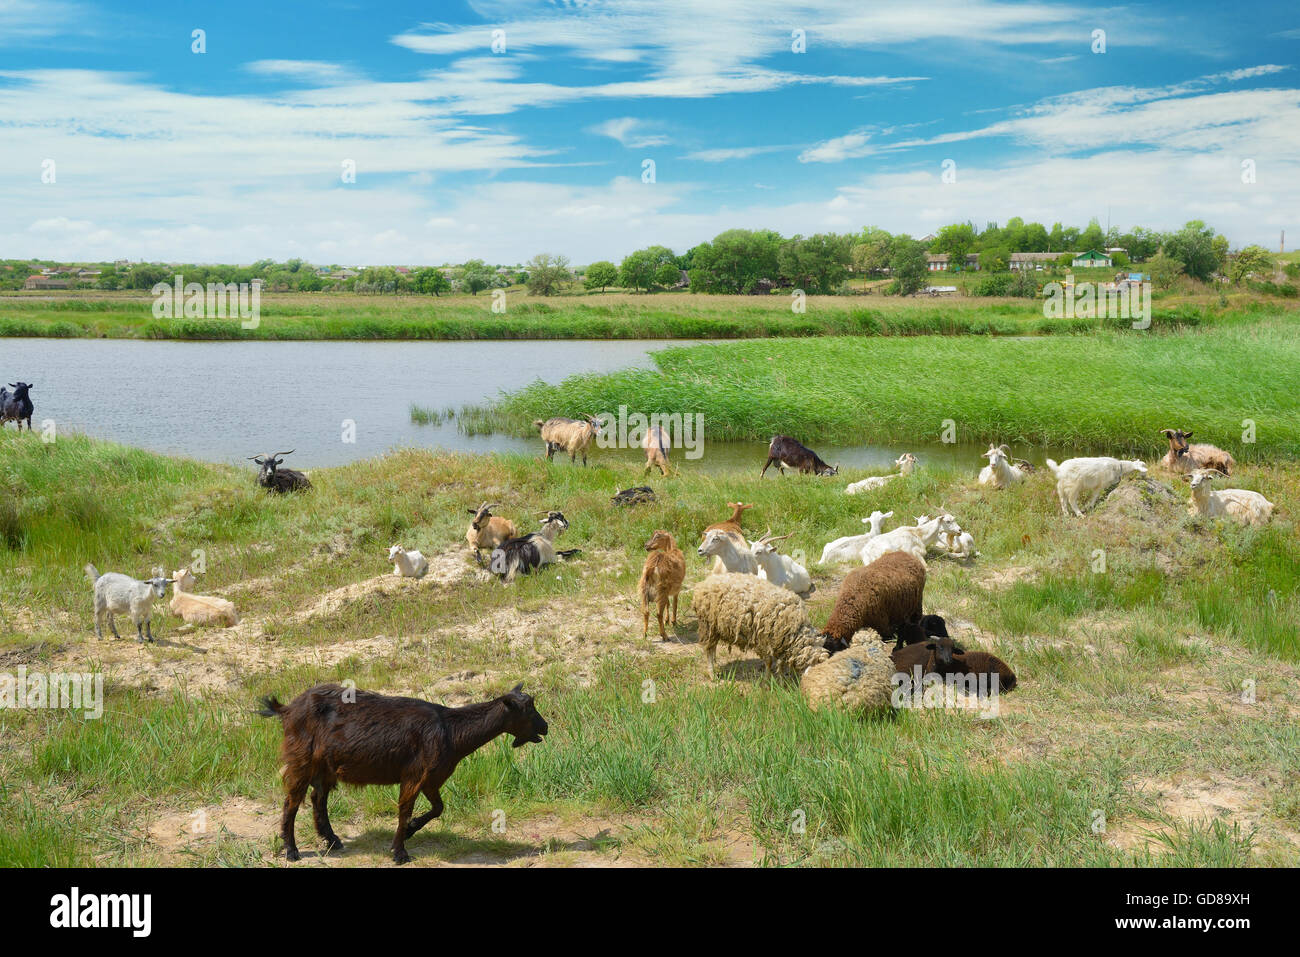 Herd of goats on the lake - Stock Image